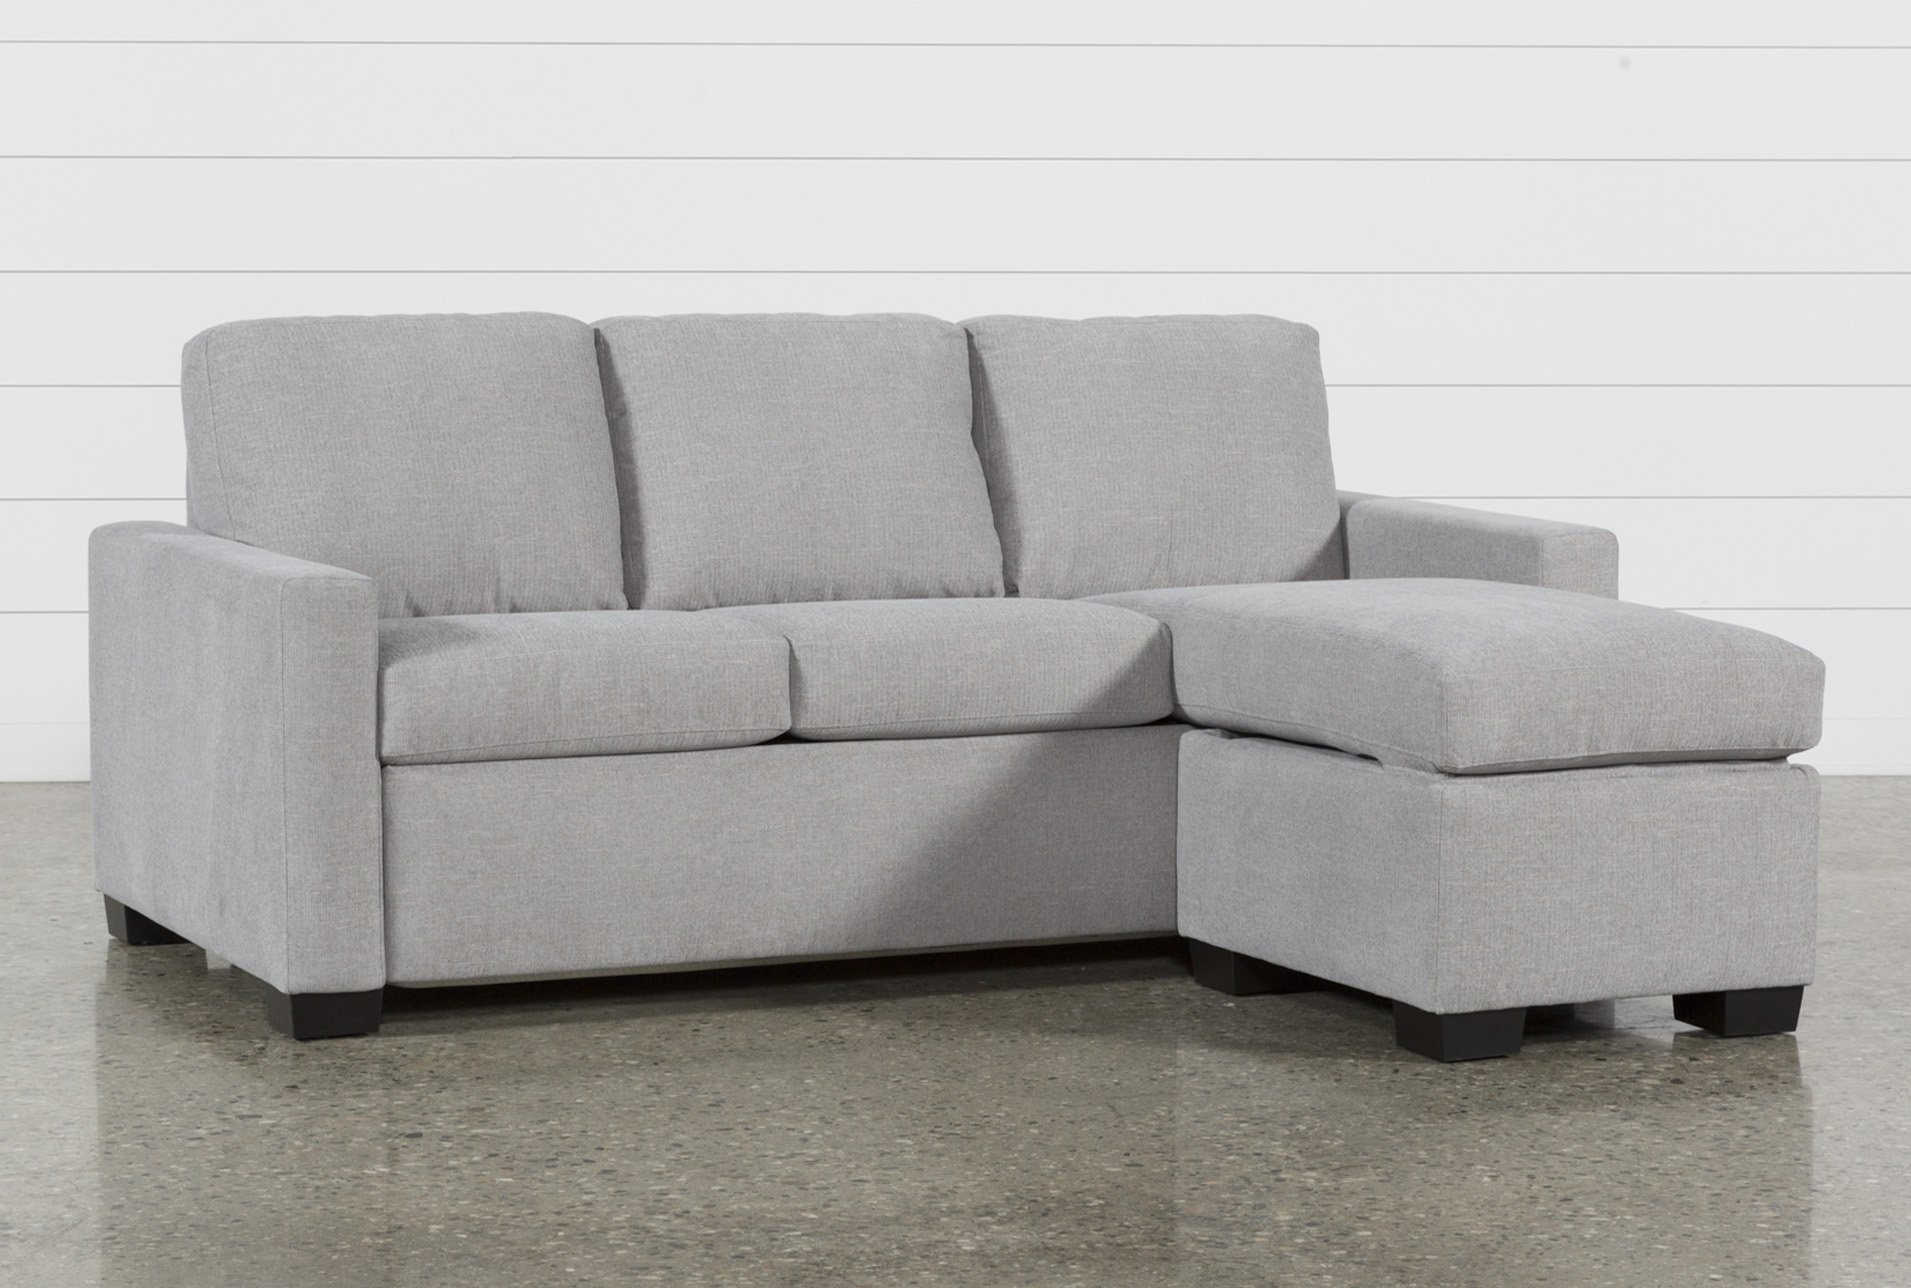 Good quality sofa beds are great utility   home interior décor